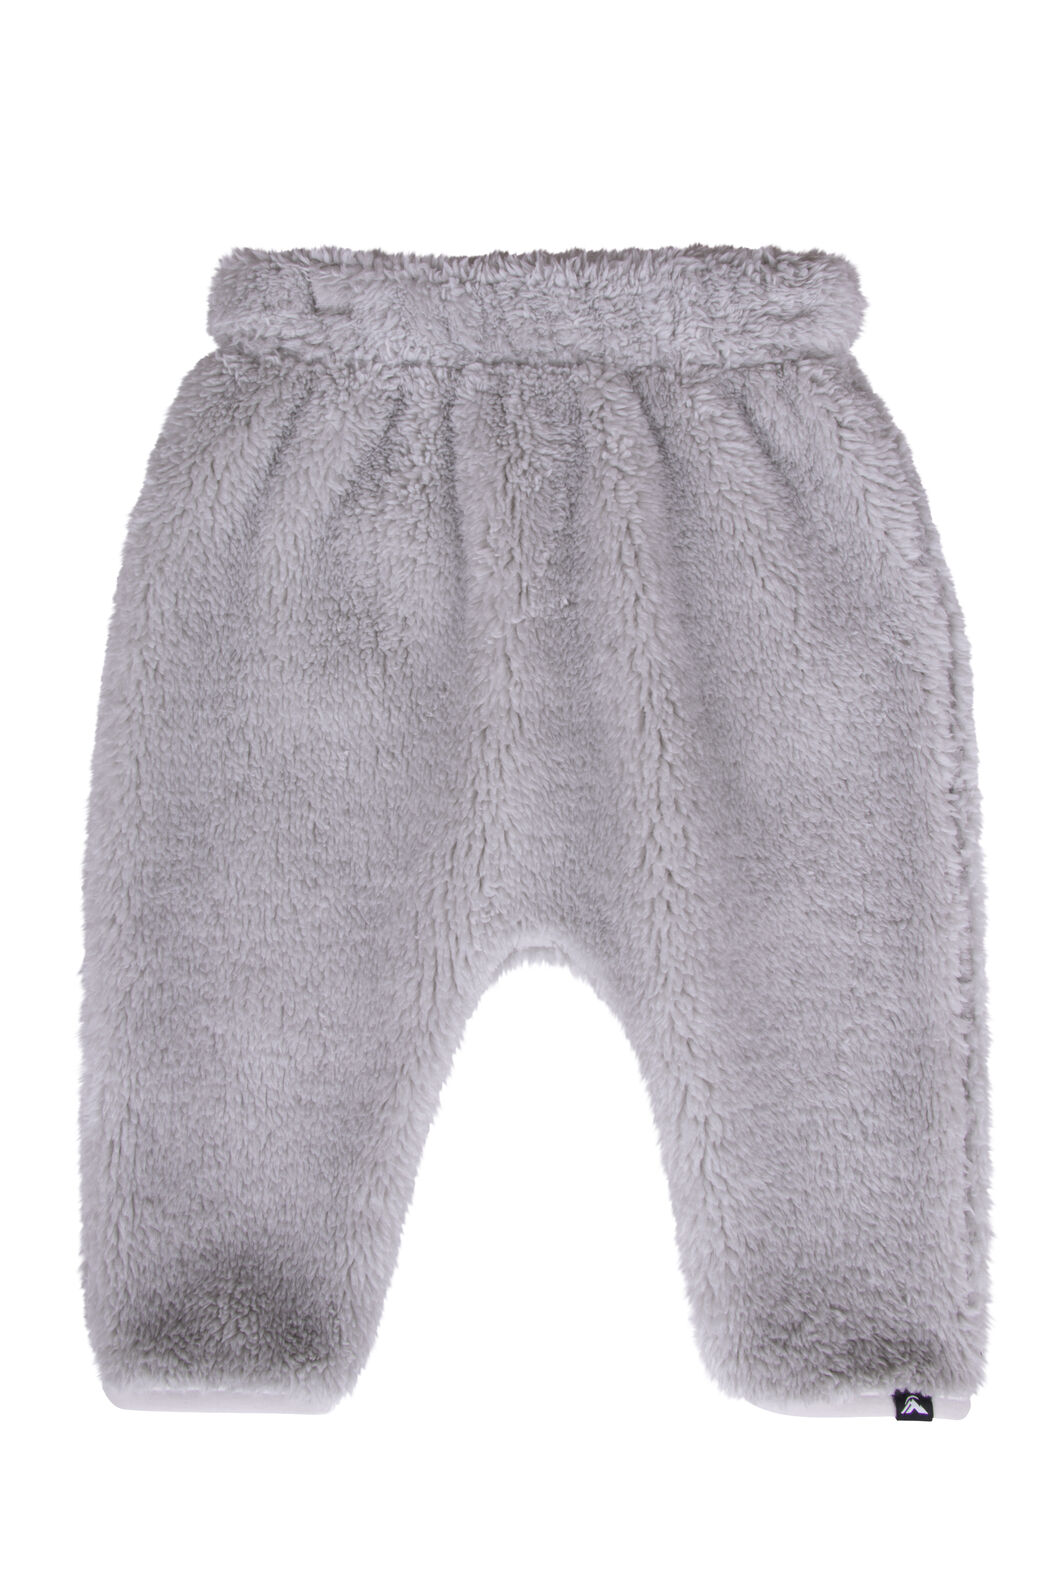 Macpac Acorn Fleece Pants — Baby, High Rise/Nimbus Cloud, hi-res